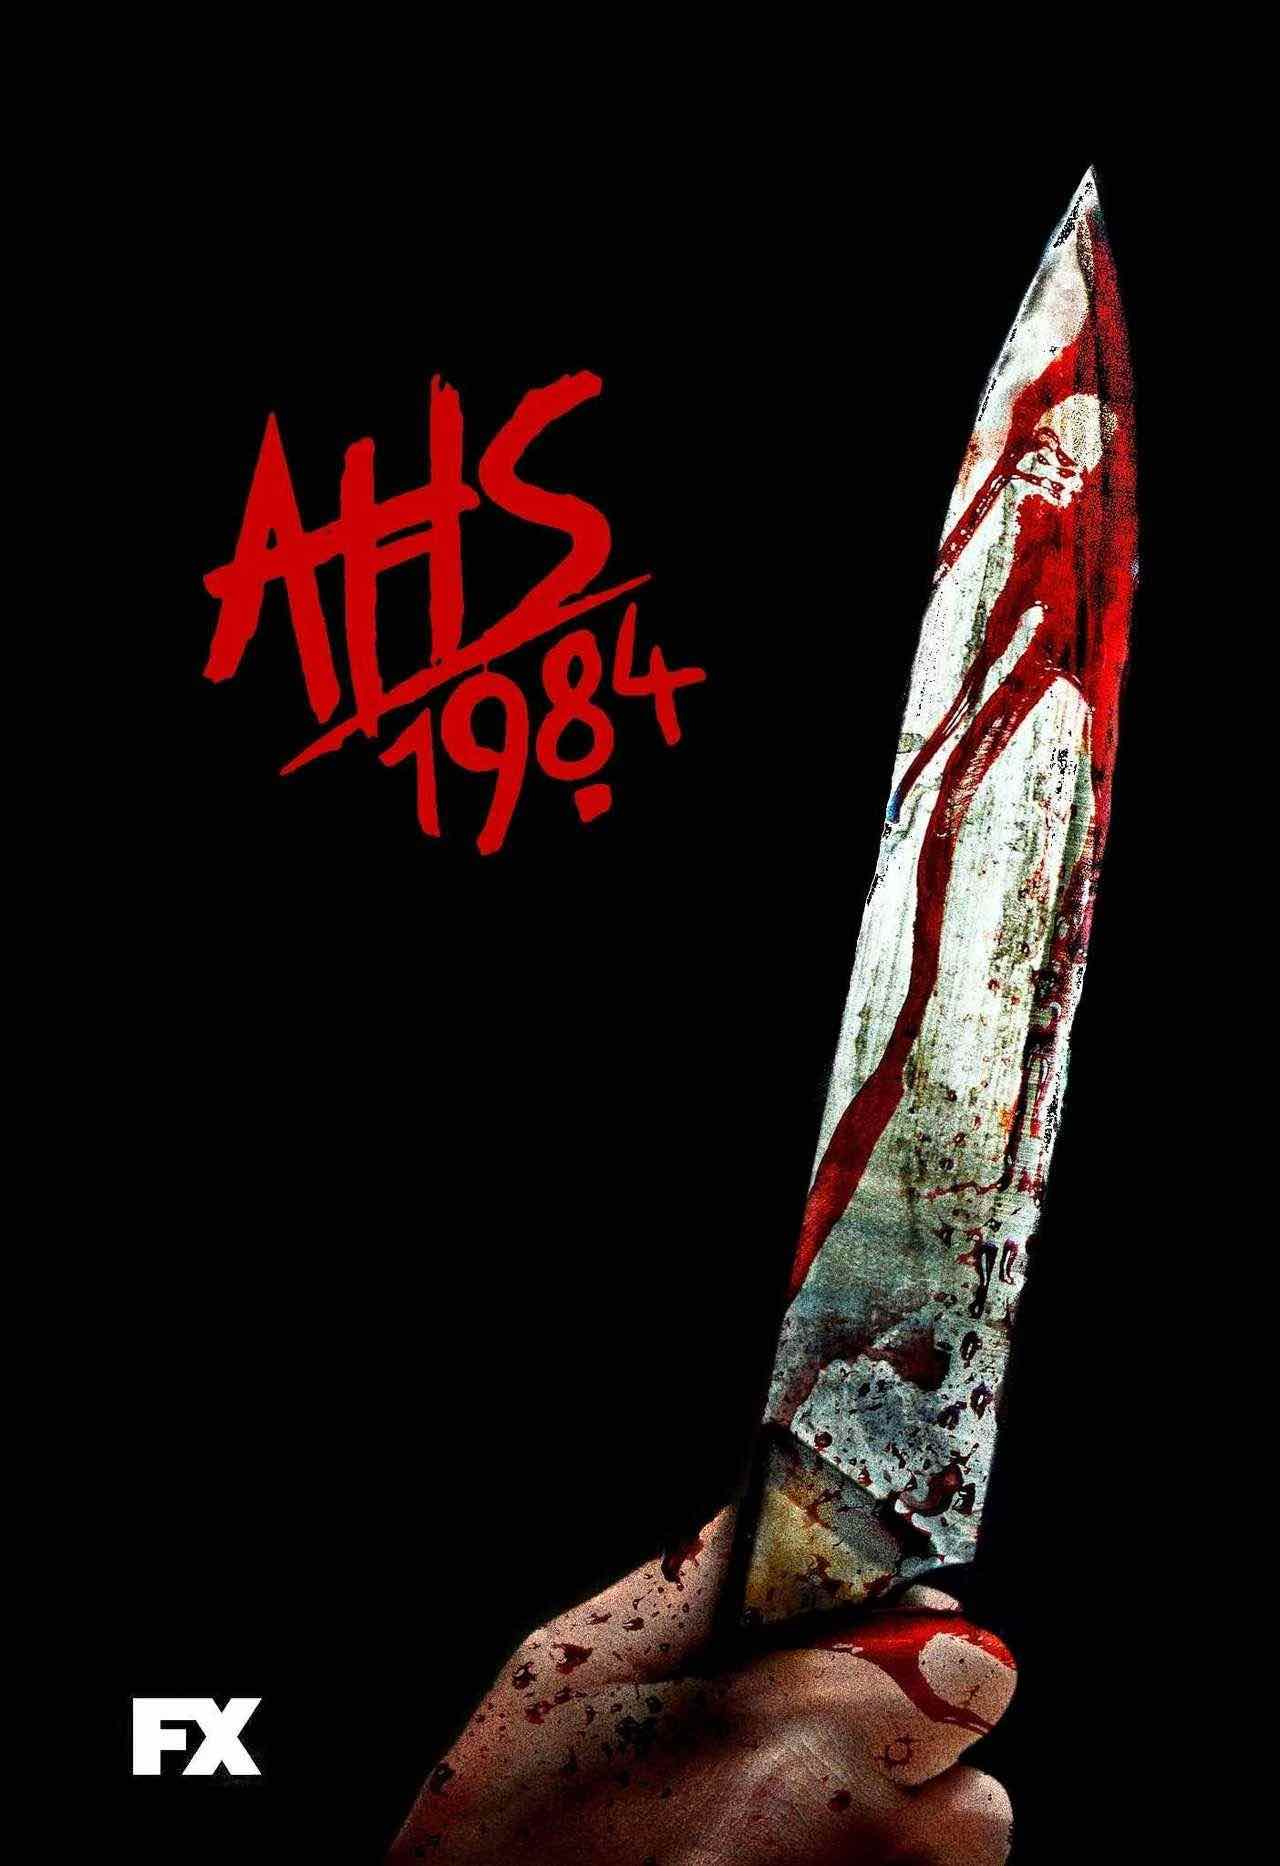 American Horror Story 1984': Everything we know so far